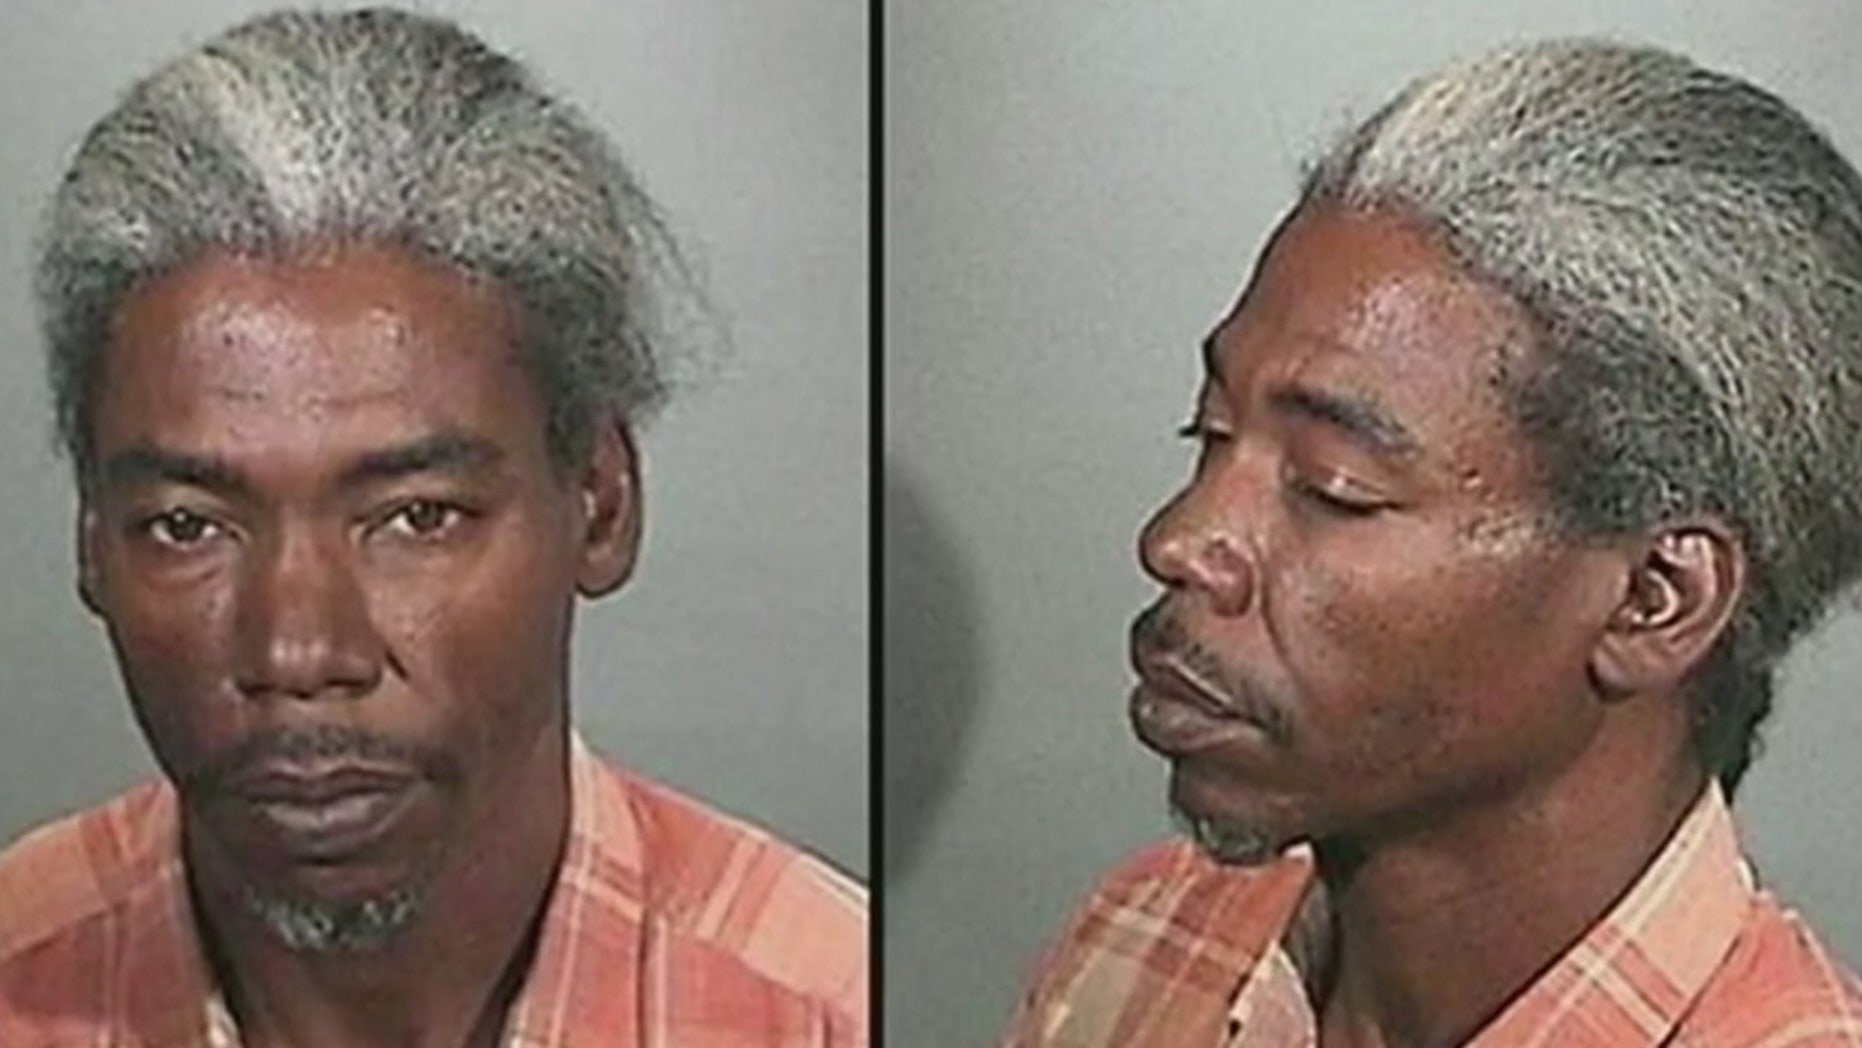 These undated photos show Clarence Dear, who was arrested Sunday, Dec. 27, 2015 and accused of murdering a woman by dousing her with gasoline and lighting her on fire two days earlier (Pomona Police Department)